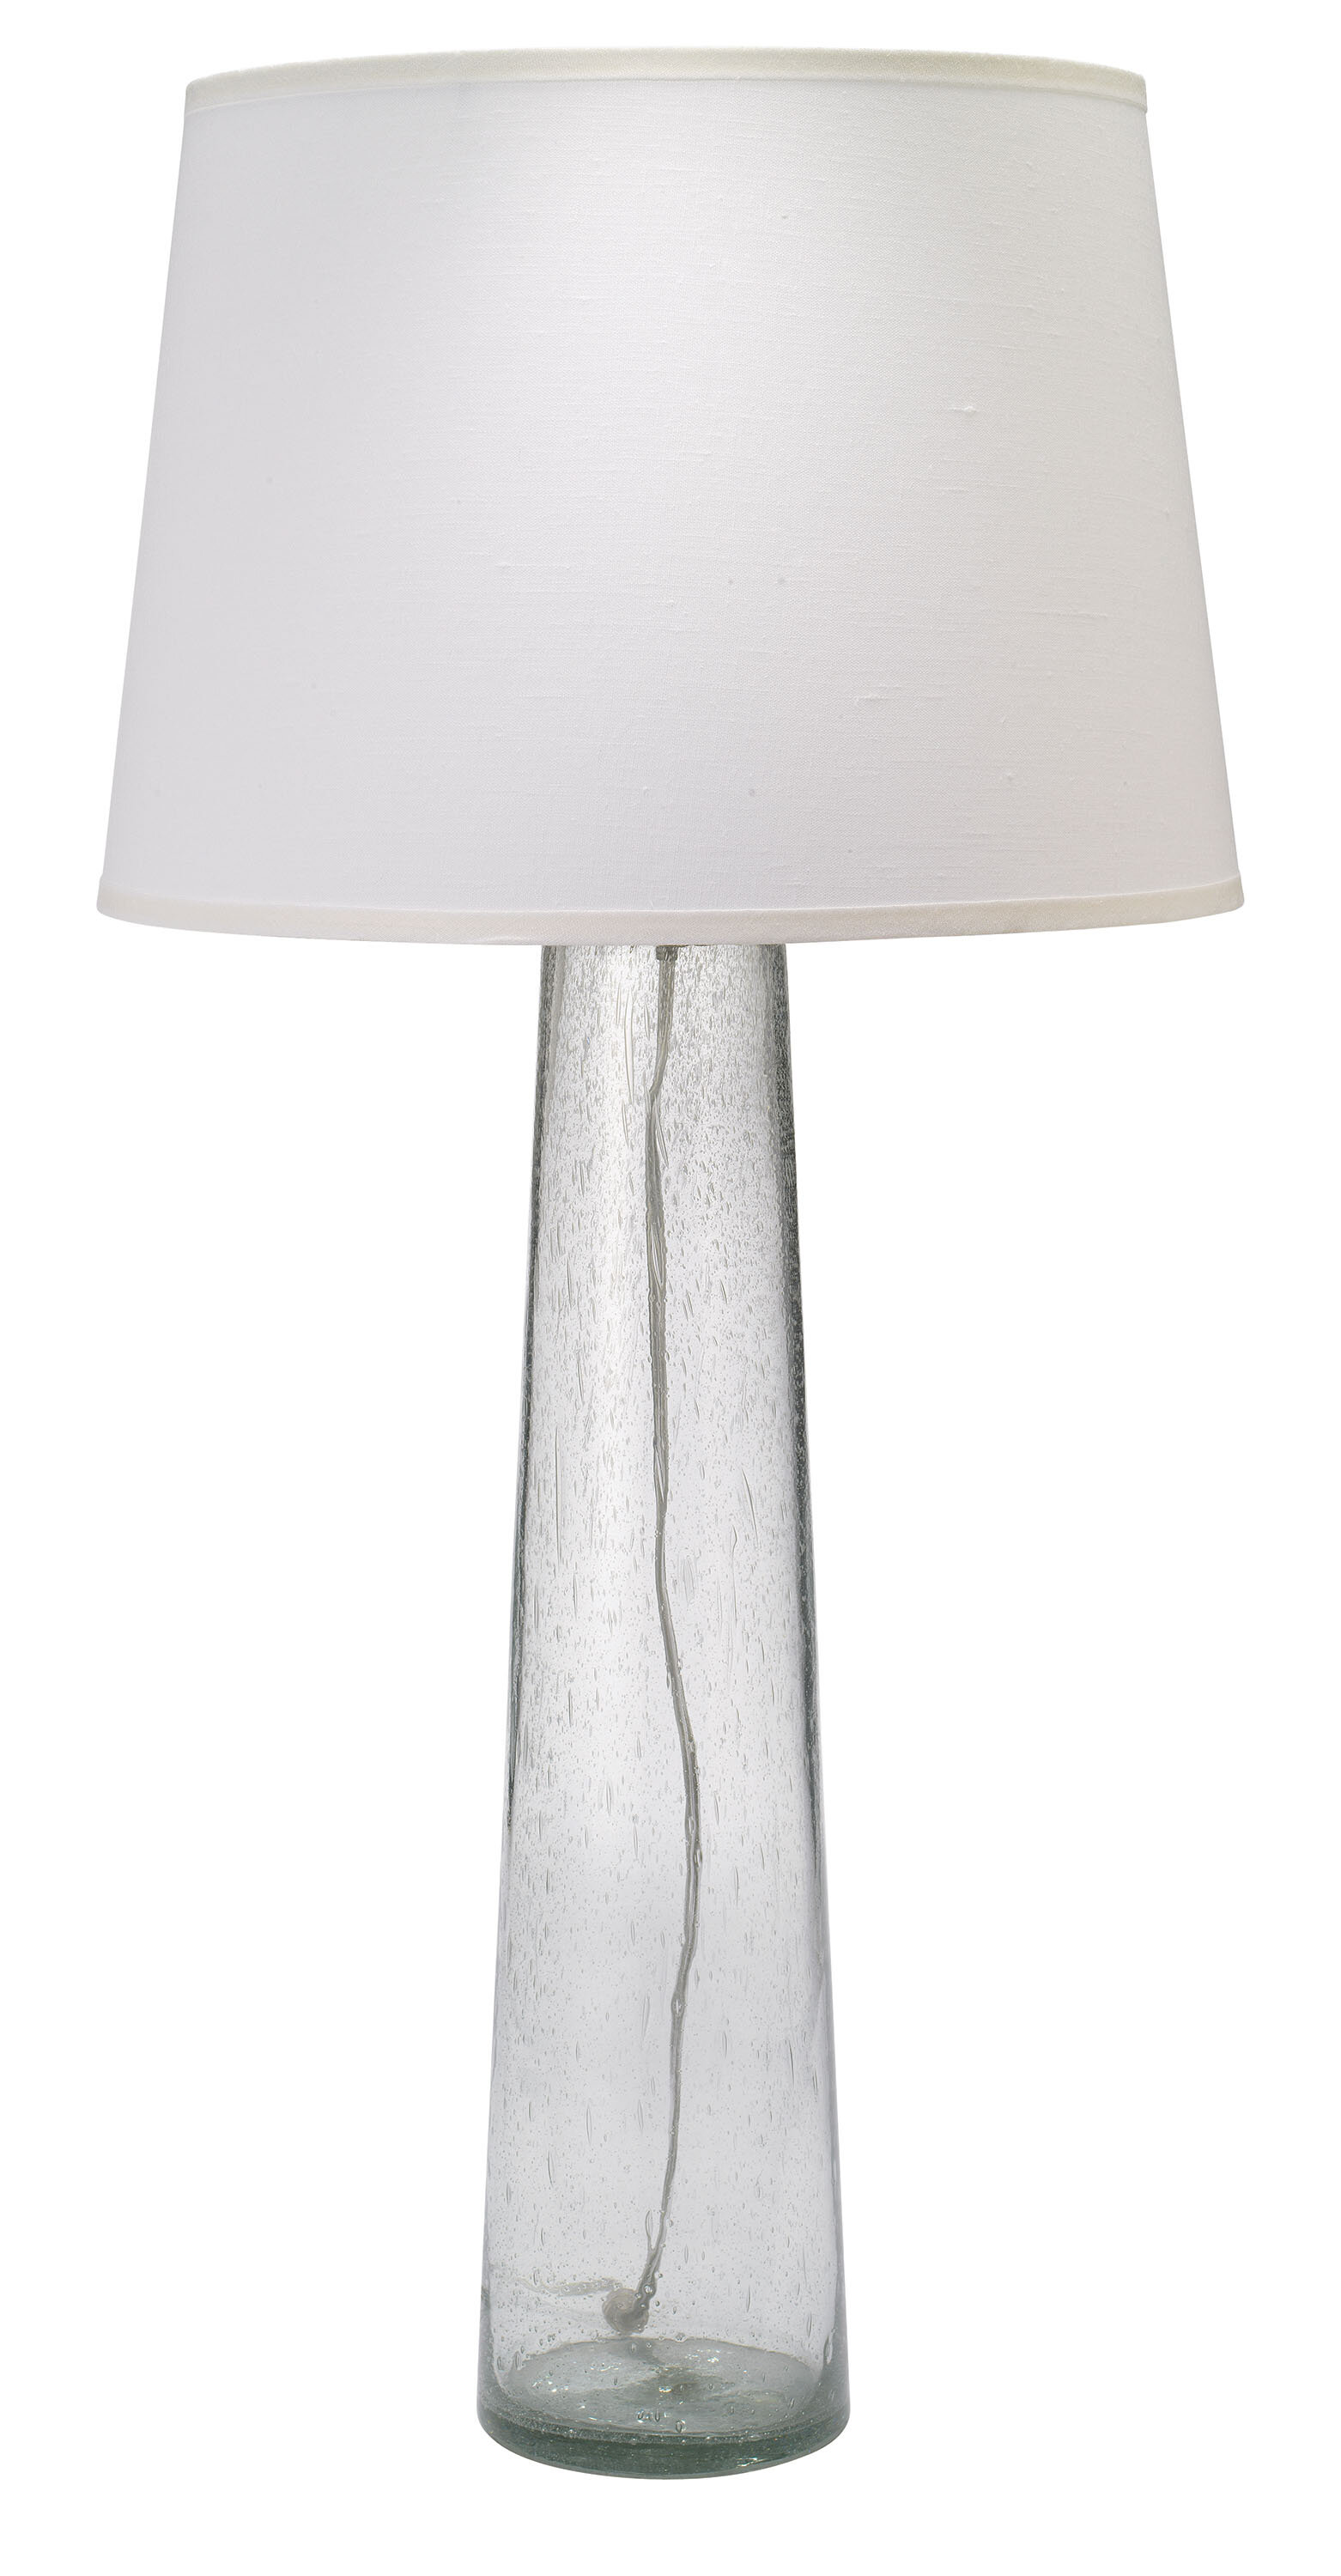 Picture of: Jamie Young Company 38 Clear Glass Table Lamp